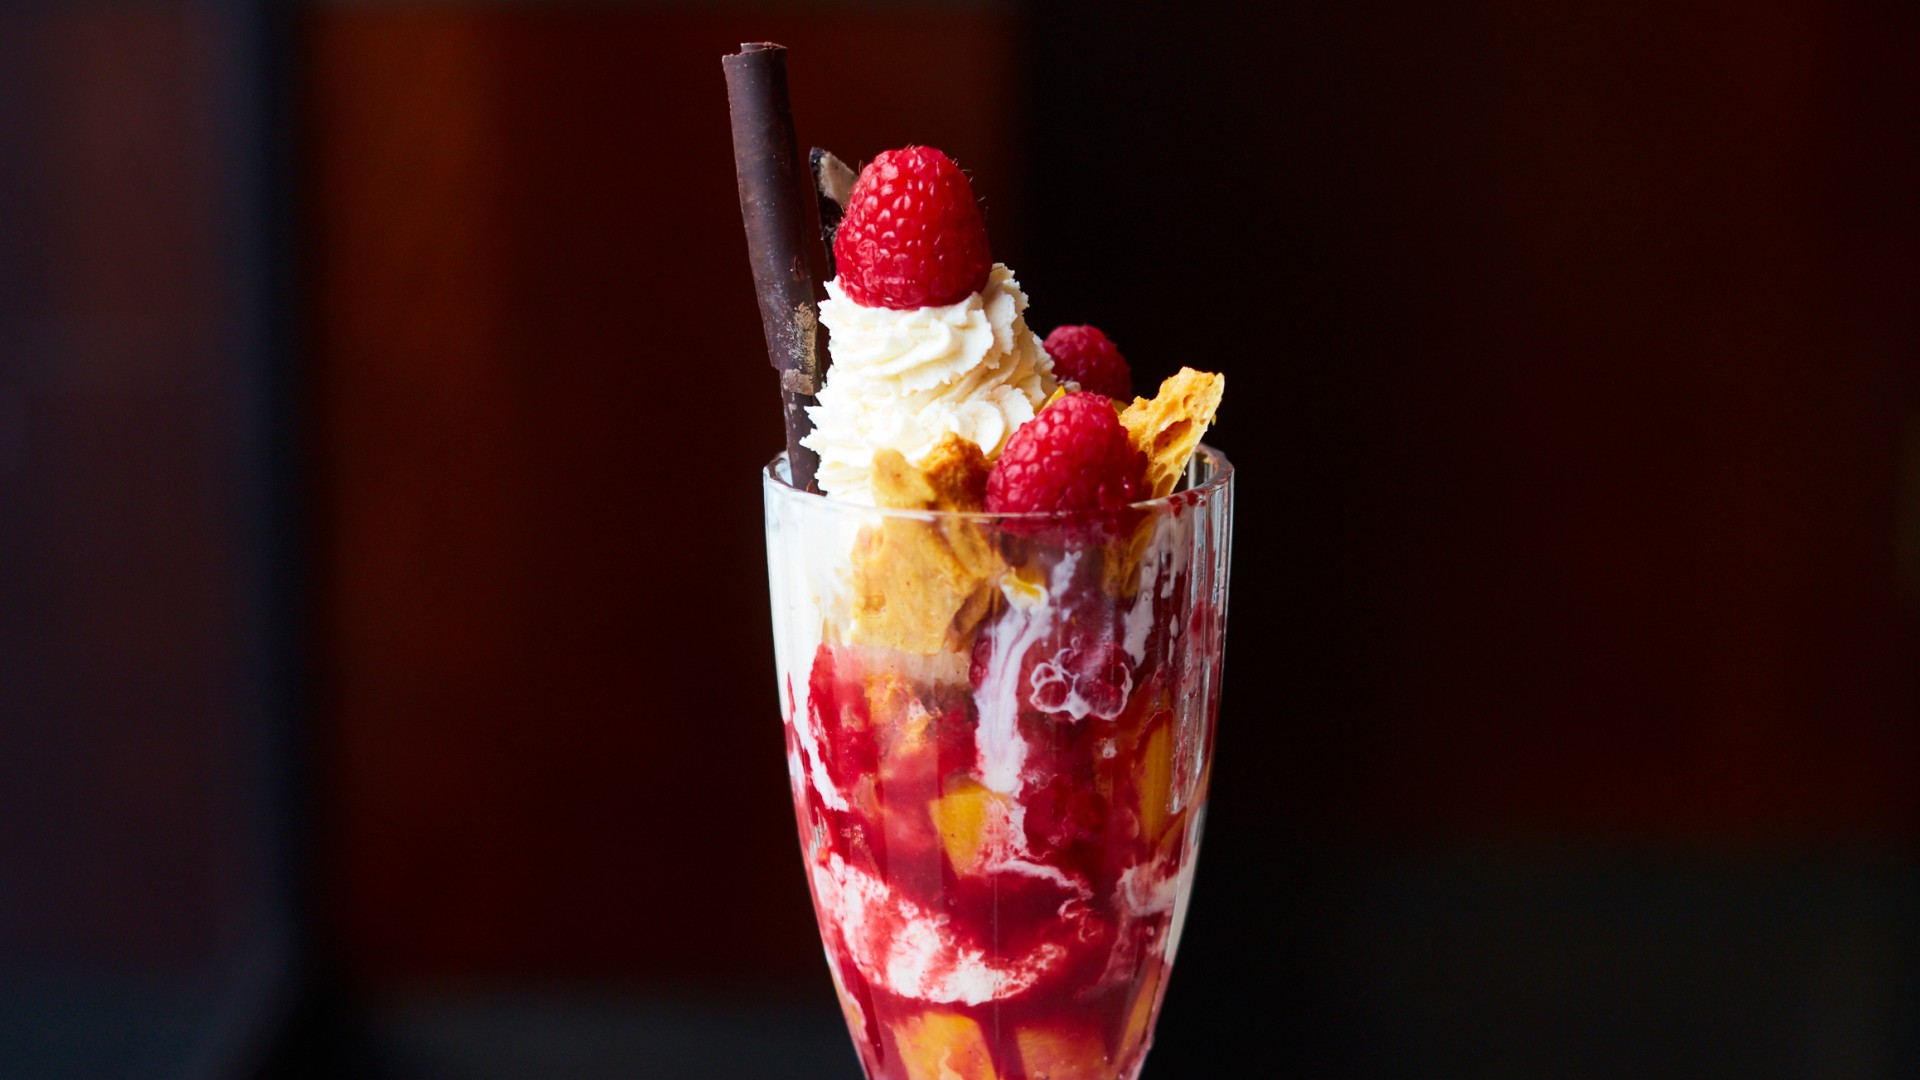 Knickerbocker glory at The Colony